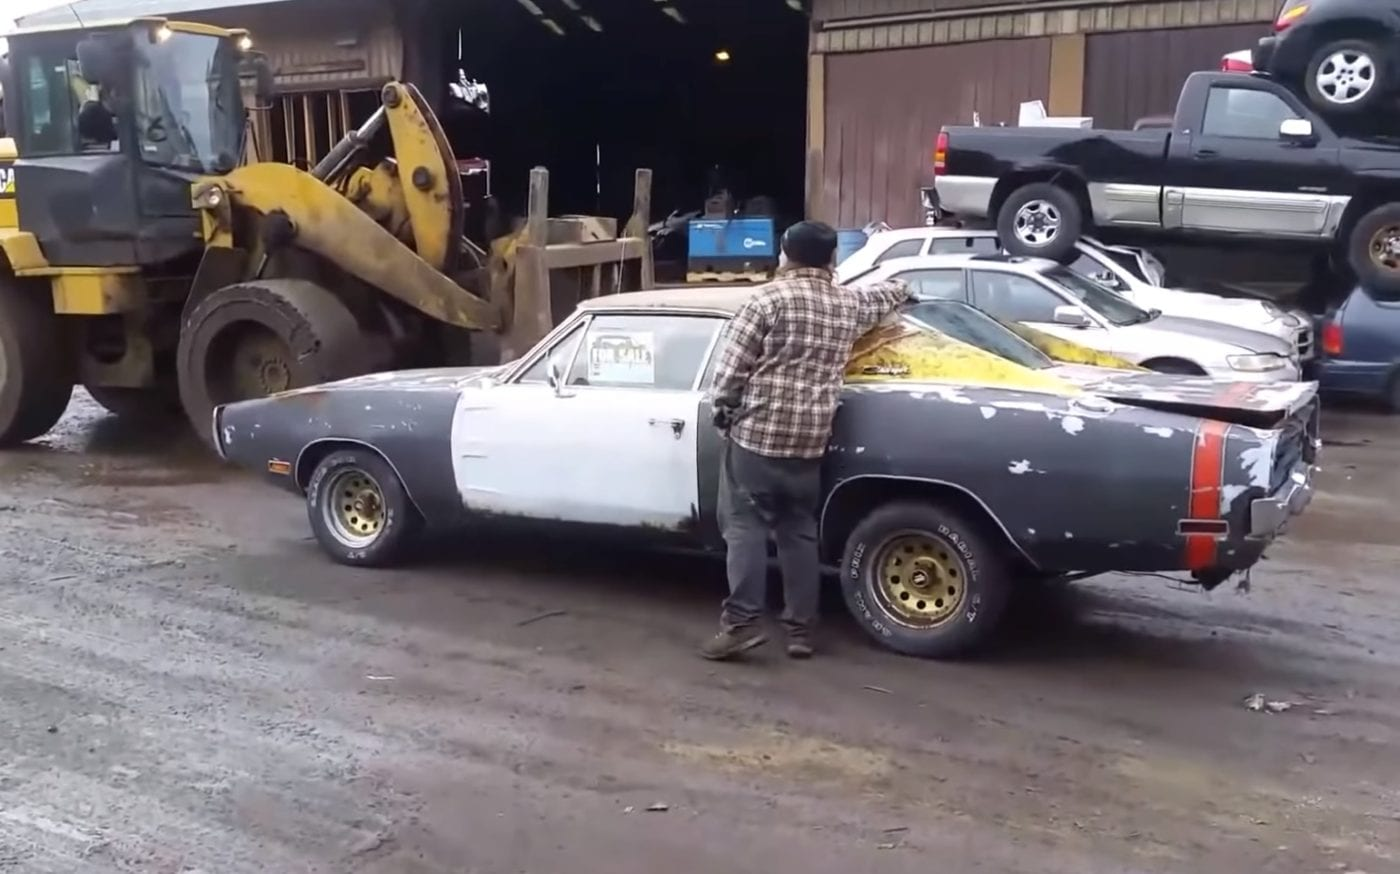 1970 Dodge Charger R/T Crushed by Angry Seller